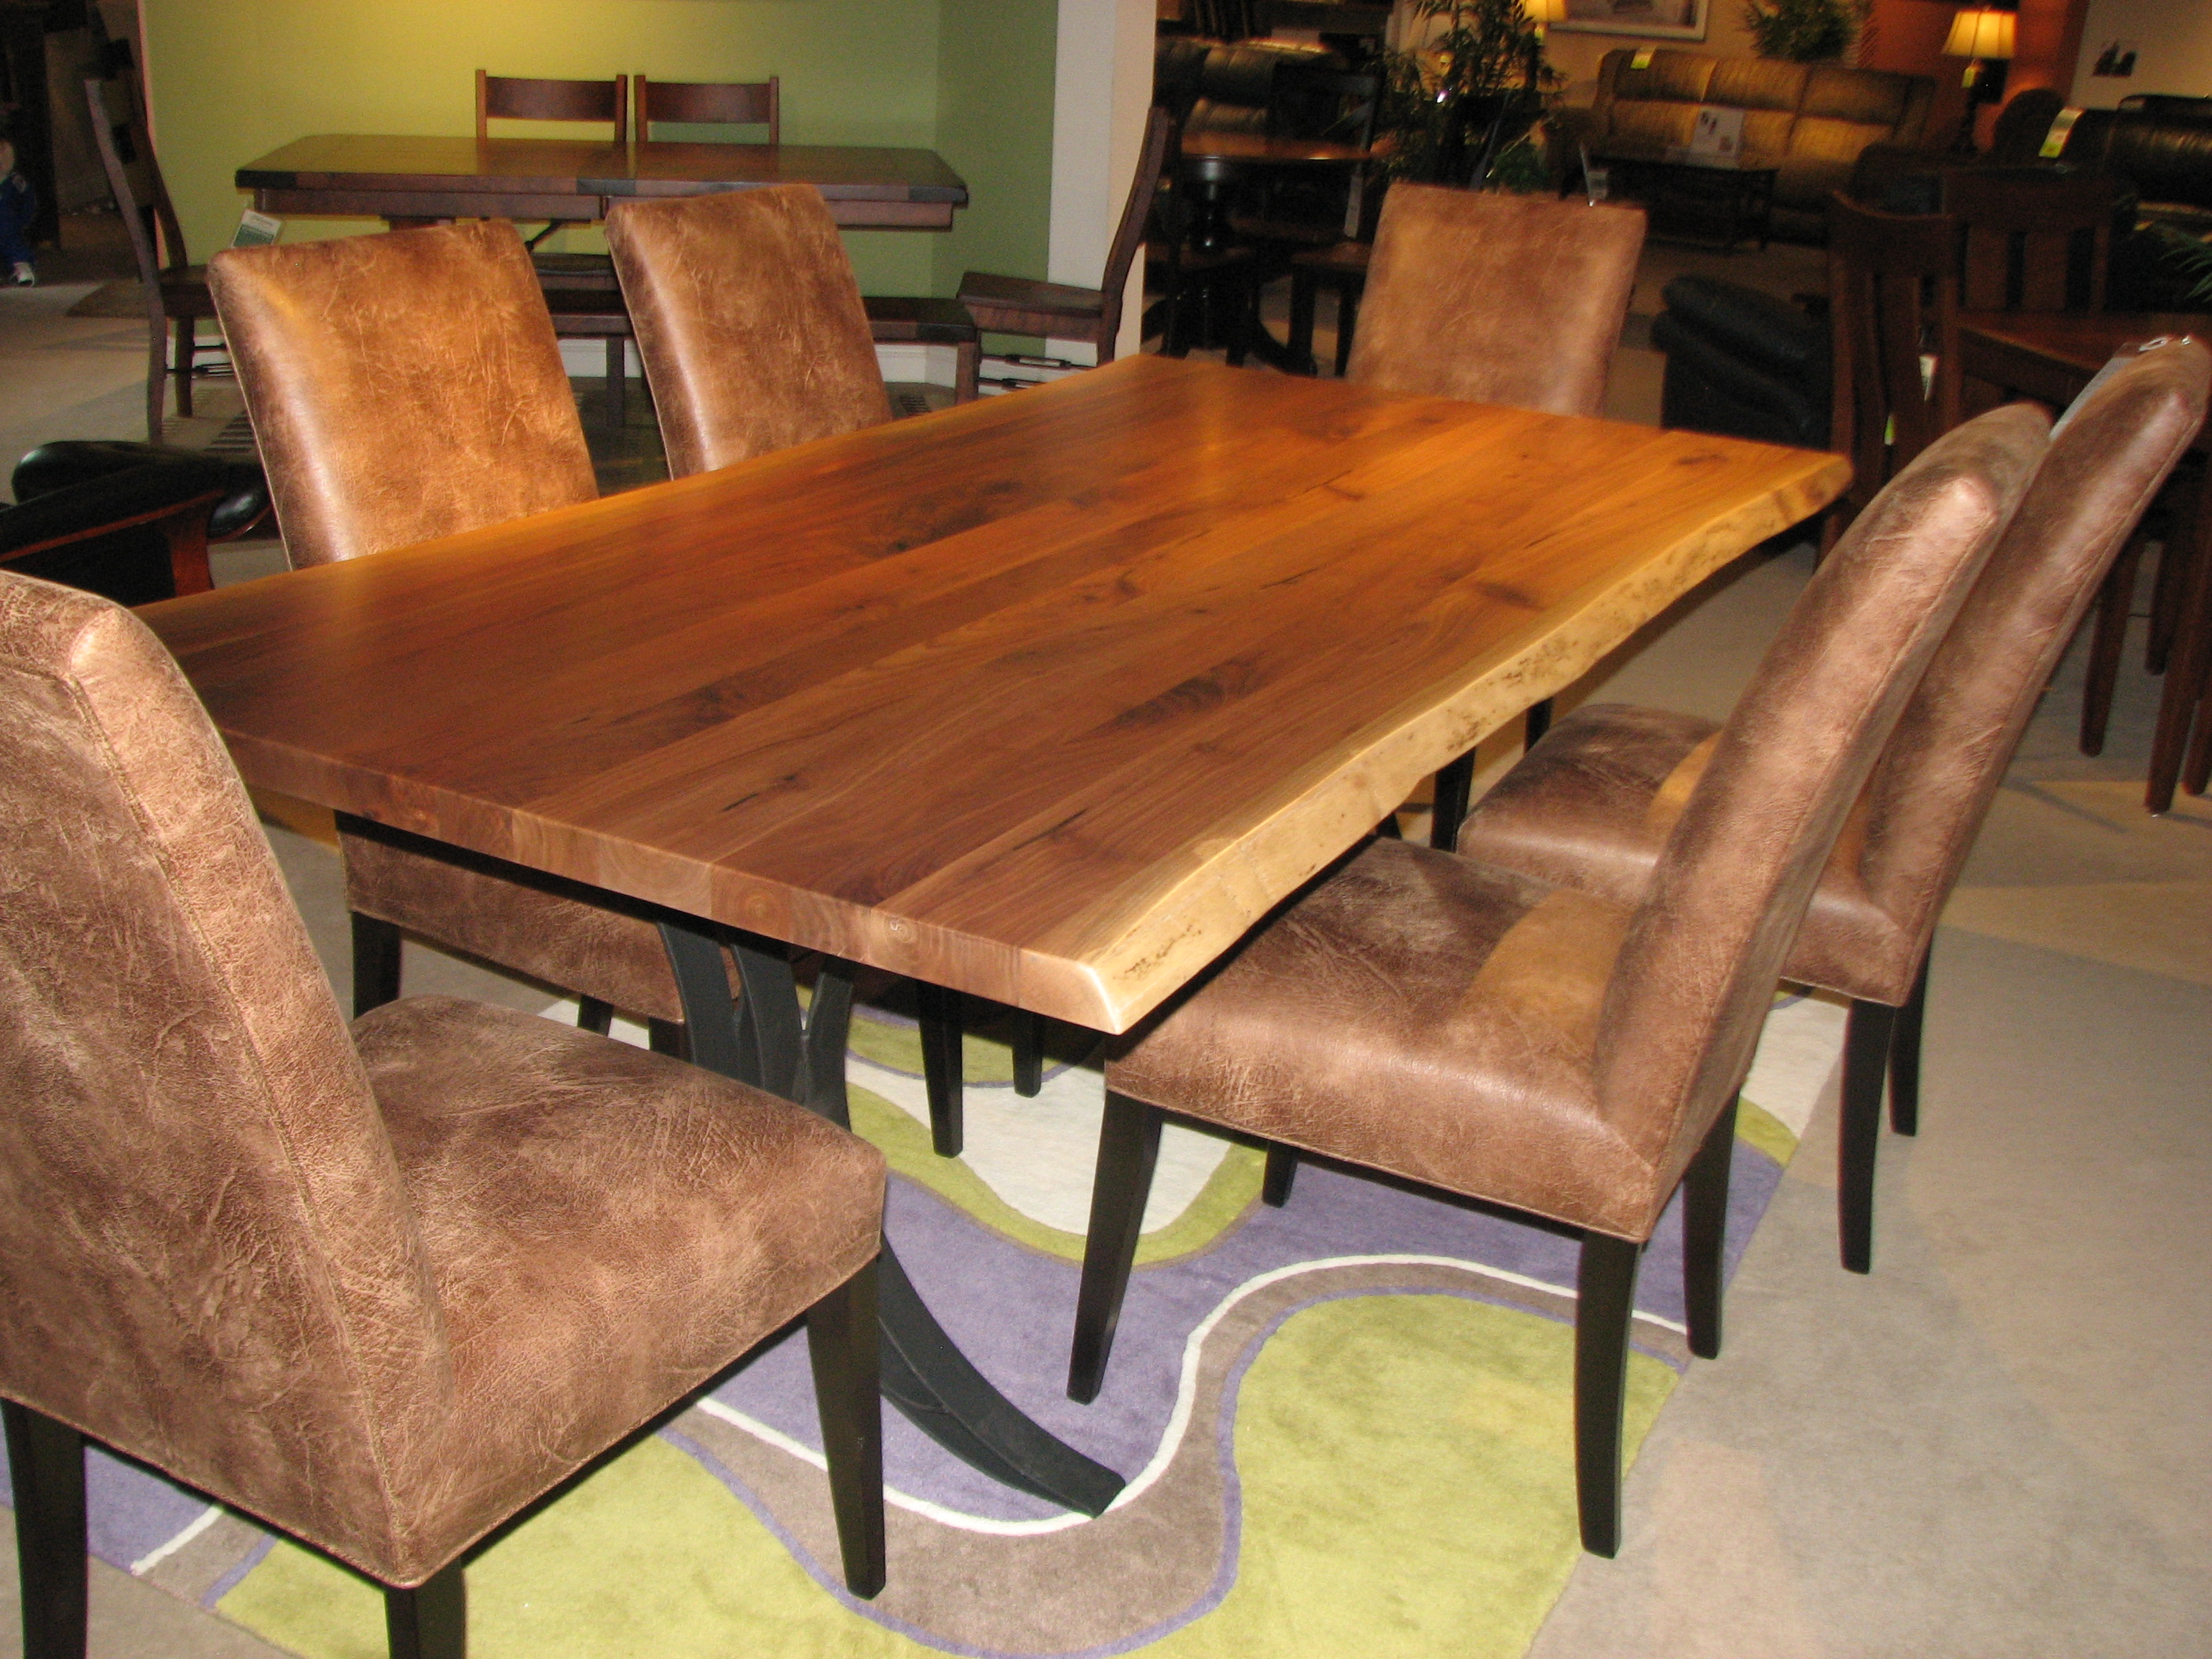 Walnut Live Edge Amish Dining Table with Upholstered Chairs by Barkman